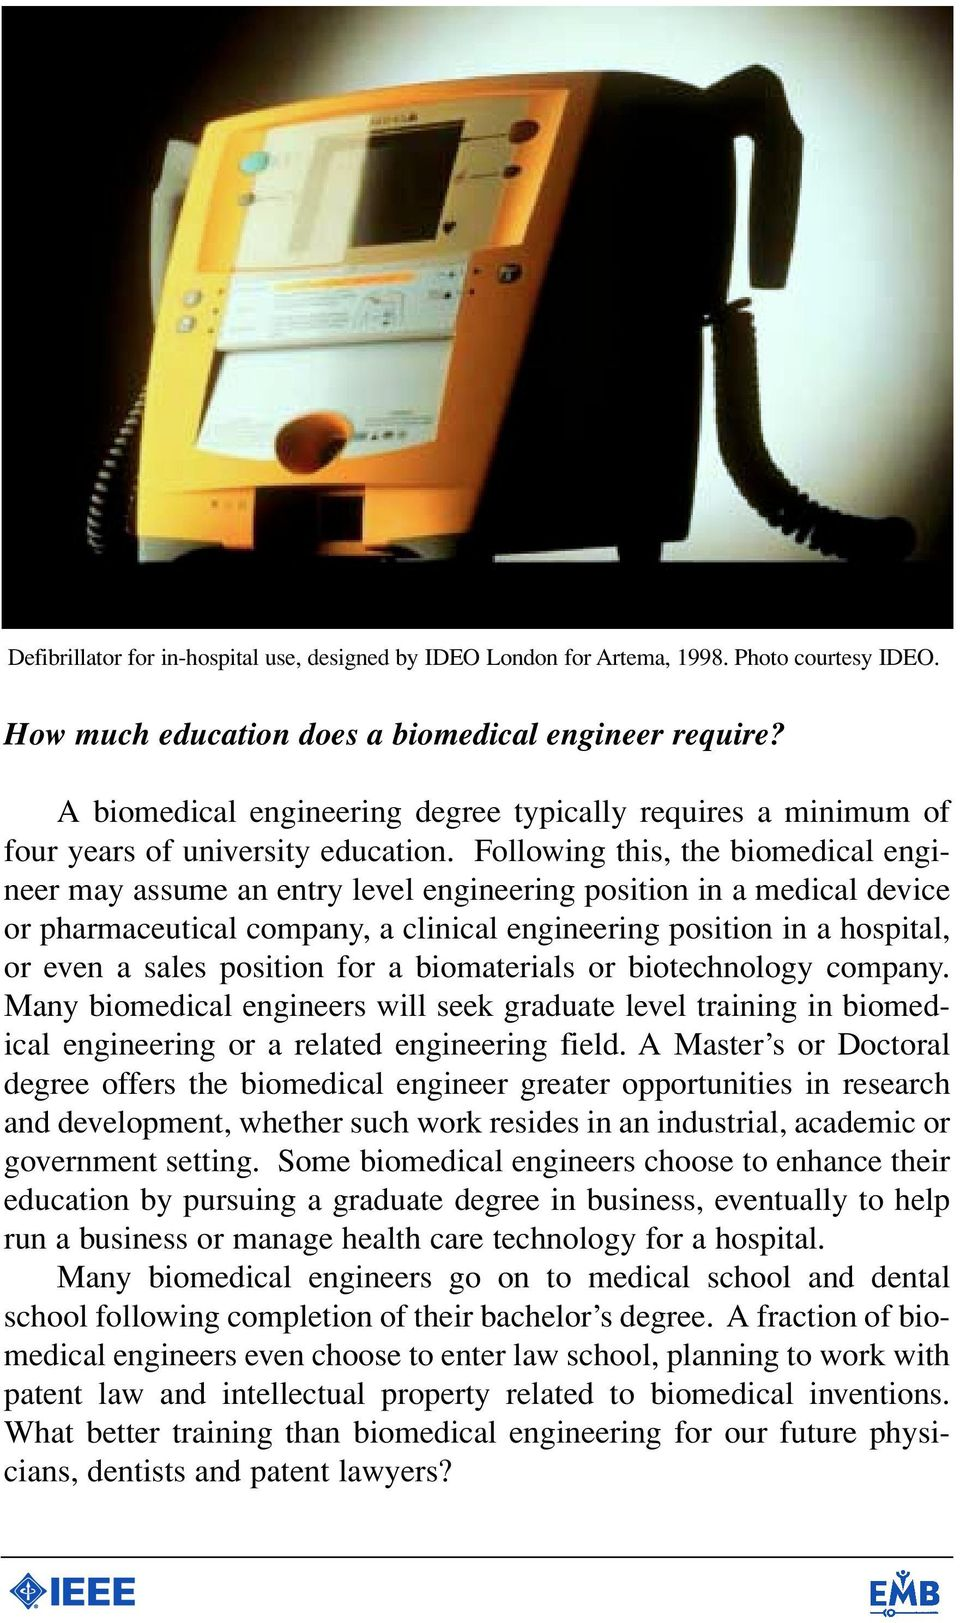 Following this, the biomedical engineer may assume an entry level engineering position in a medical device or pharmaceutical company, a clinical engineering position in a hospital, or even a sales